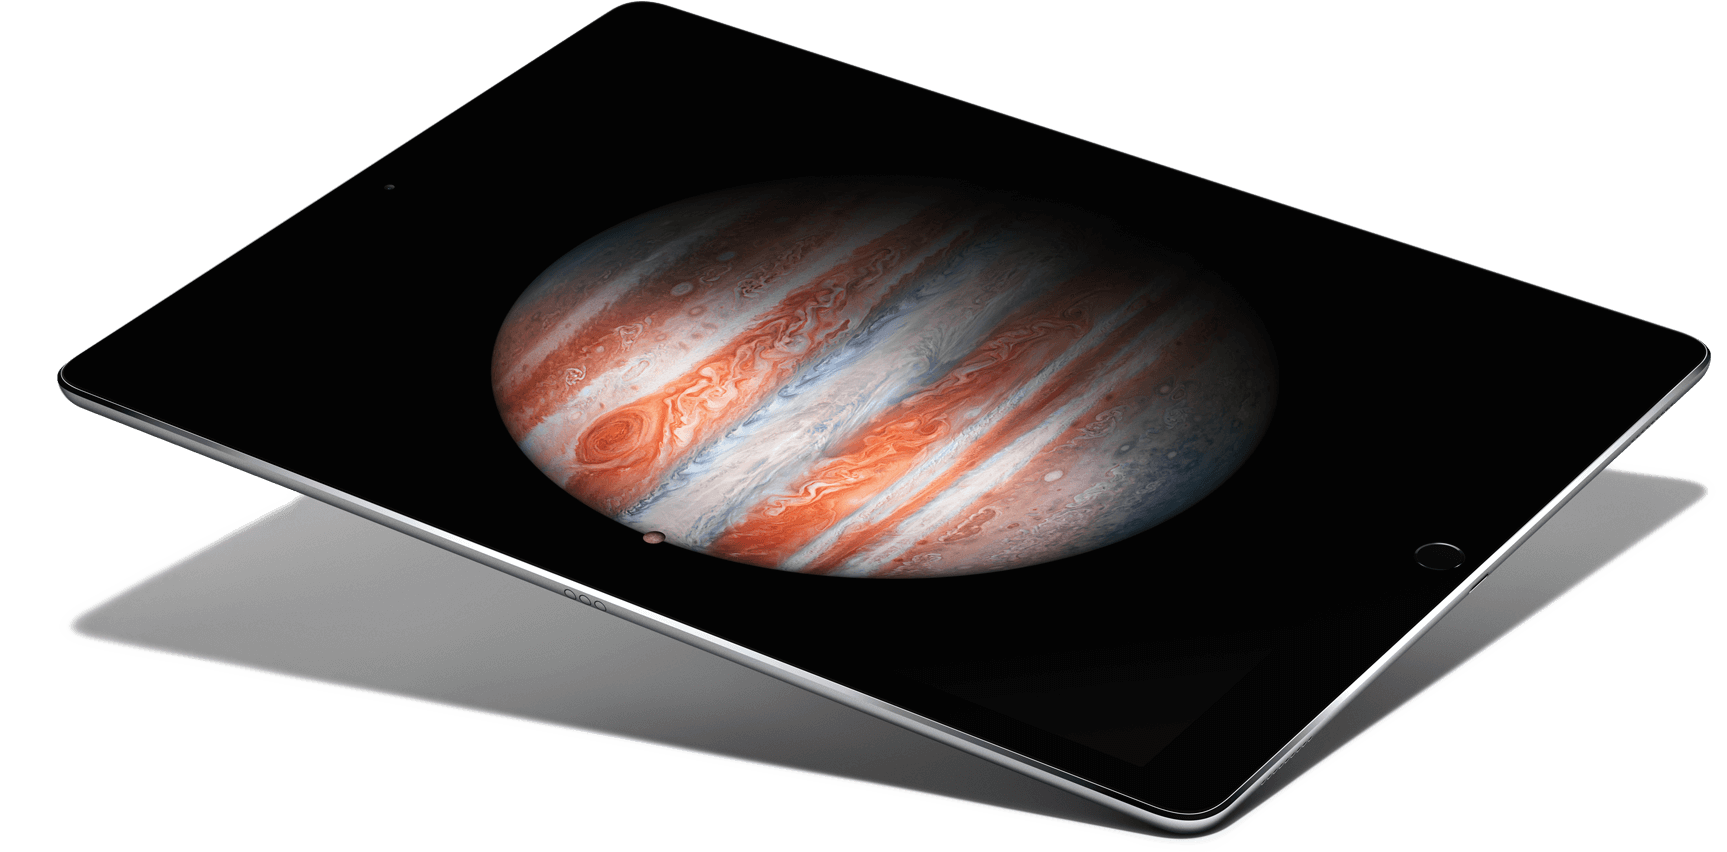 12.9″ inch iPad! The iPad Pro!